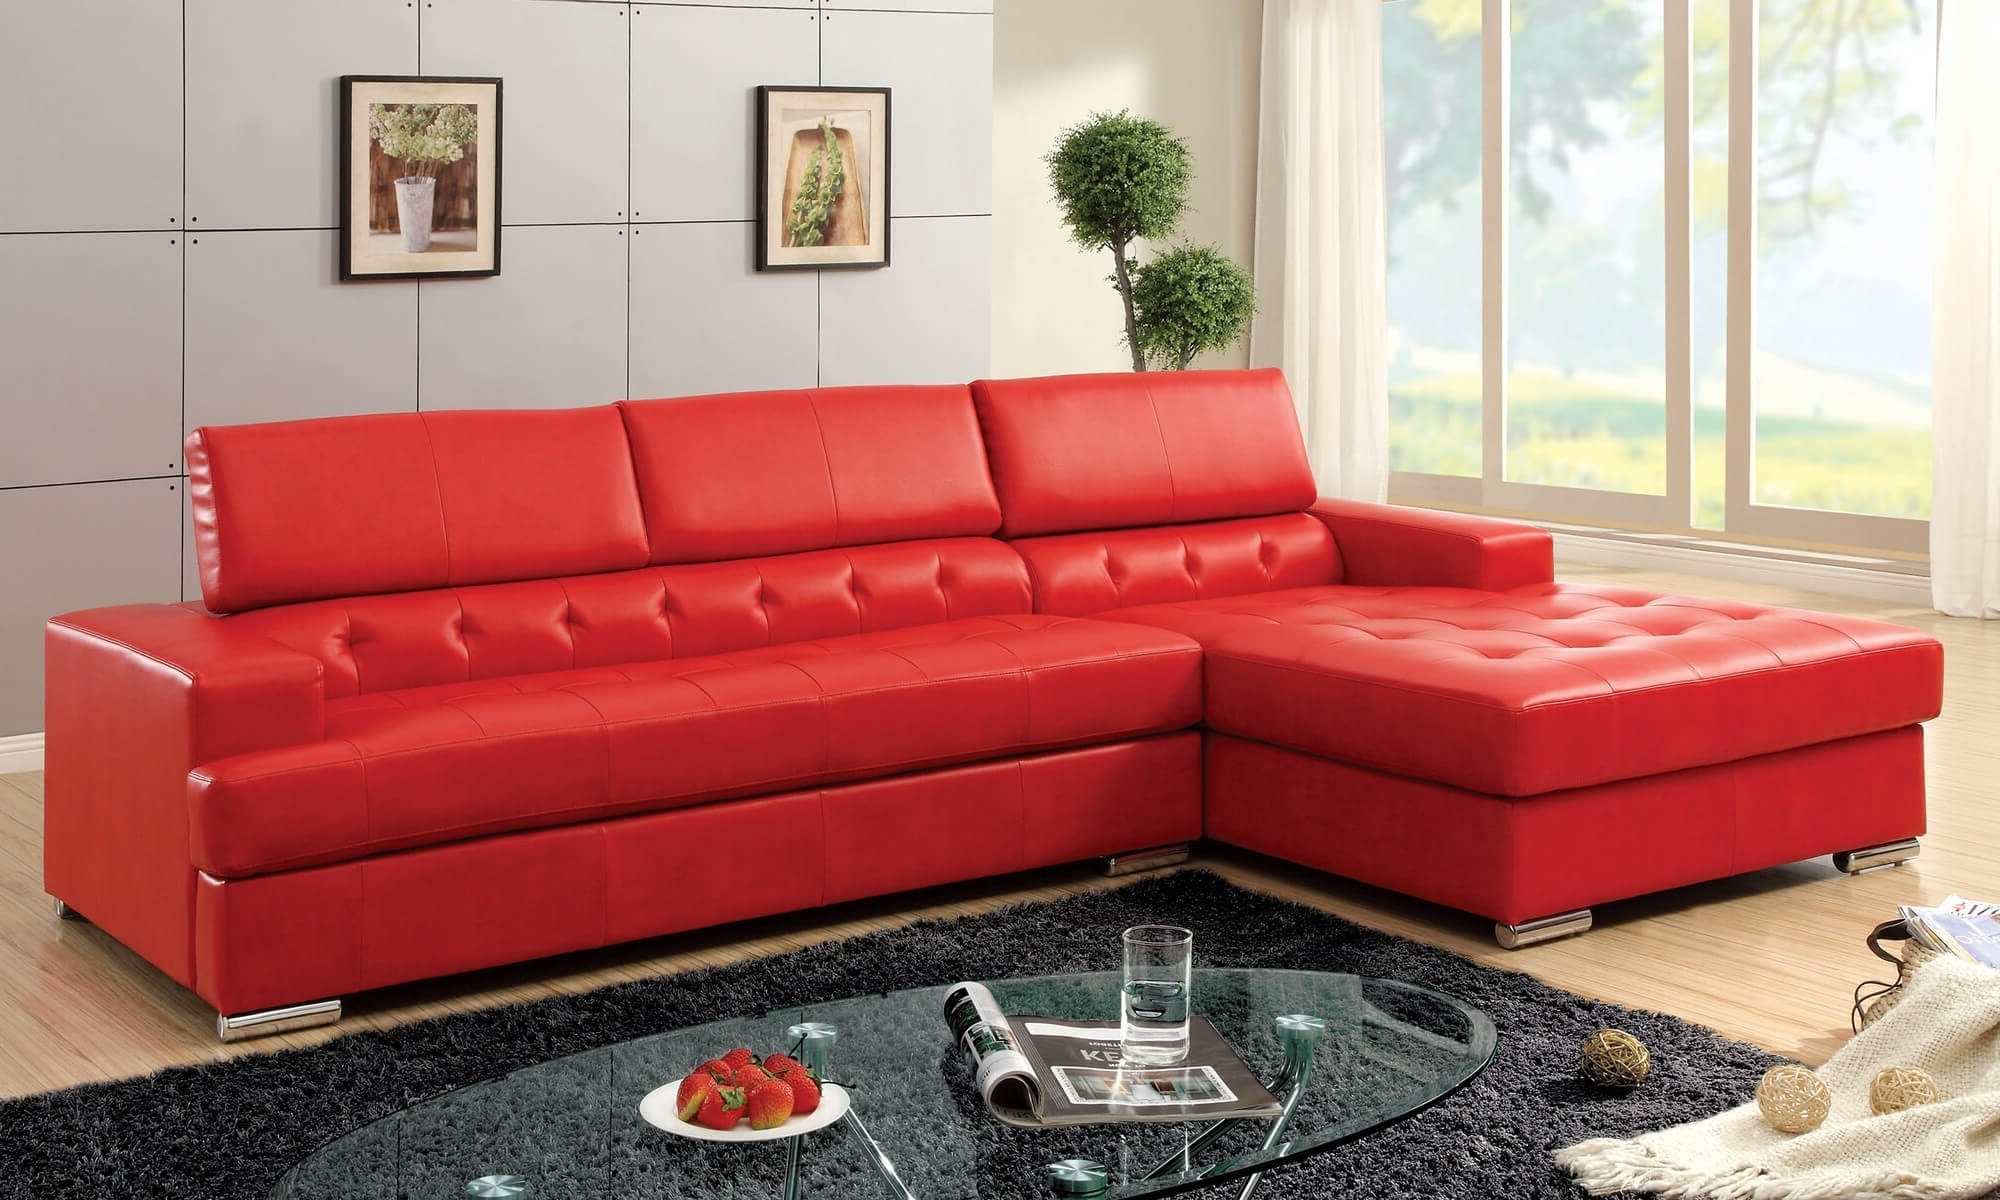 Preferred Sectional Sofa Design: Wonderful Red Sectional Sofa With Chaise Intended For Red Leather Sectionals With Chaise (View 4 of 15)